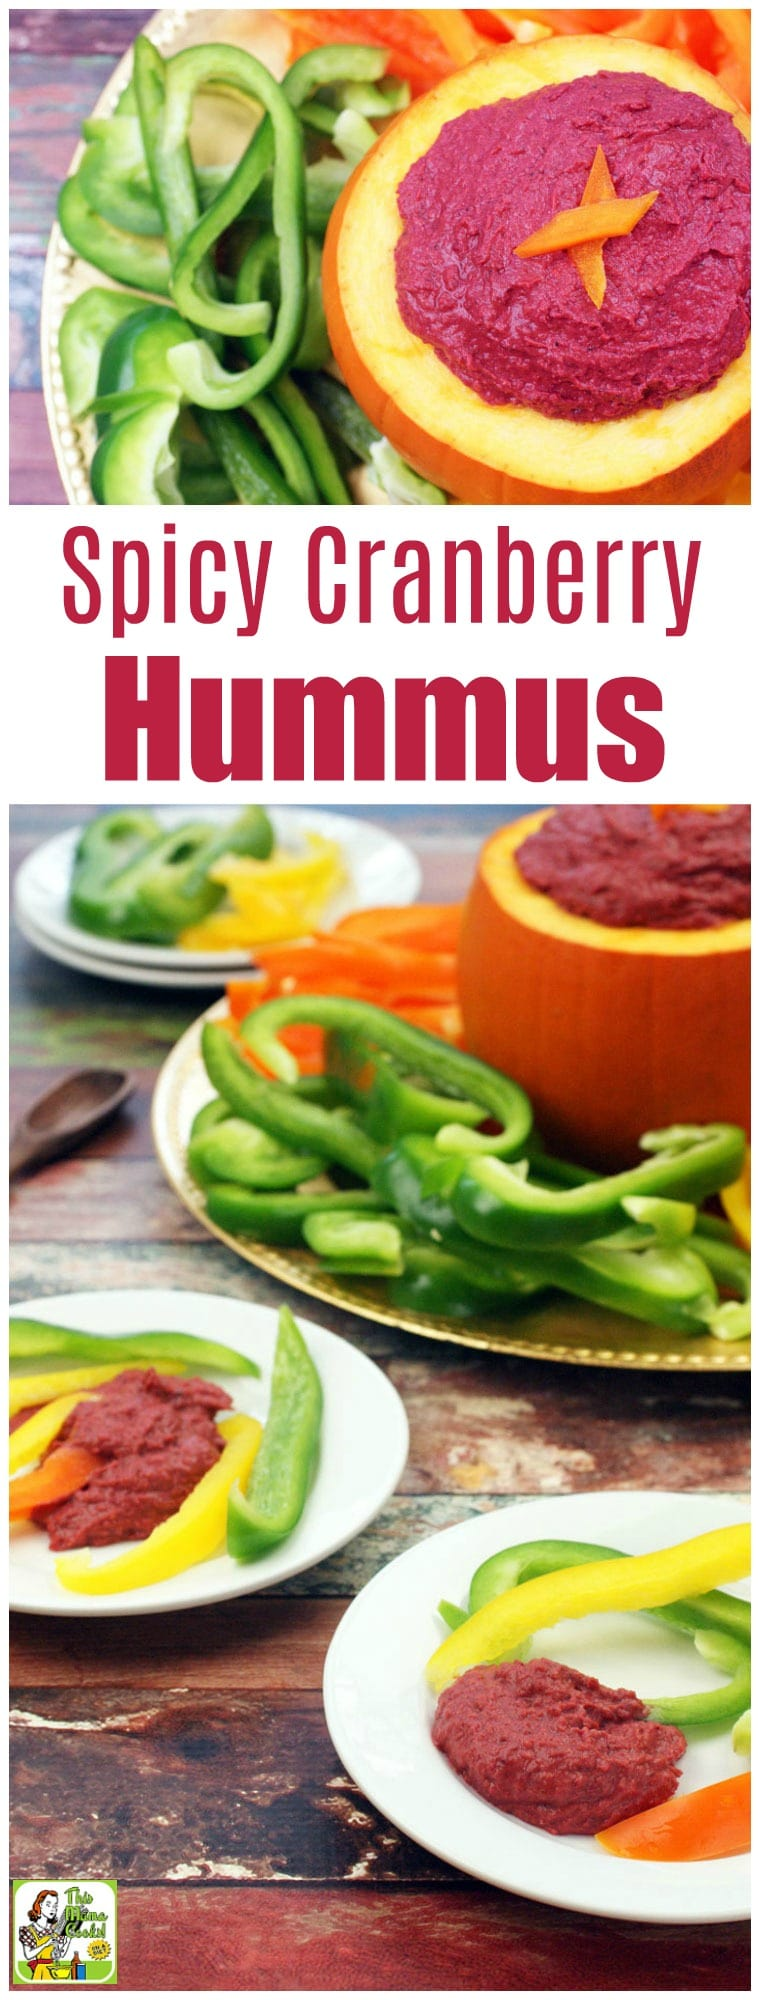 Spicy Cranberry Hummus Recipe